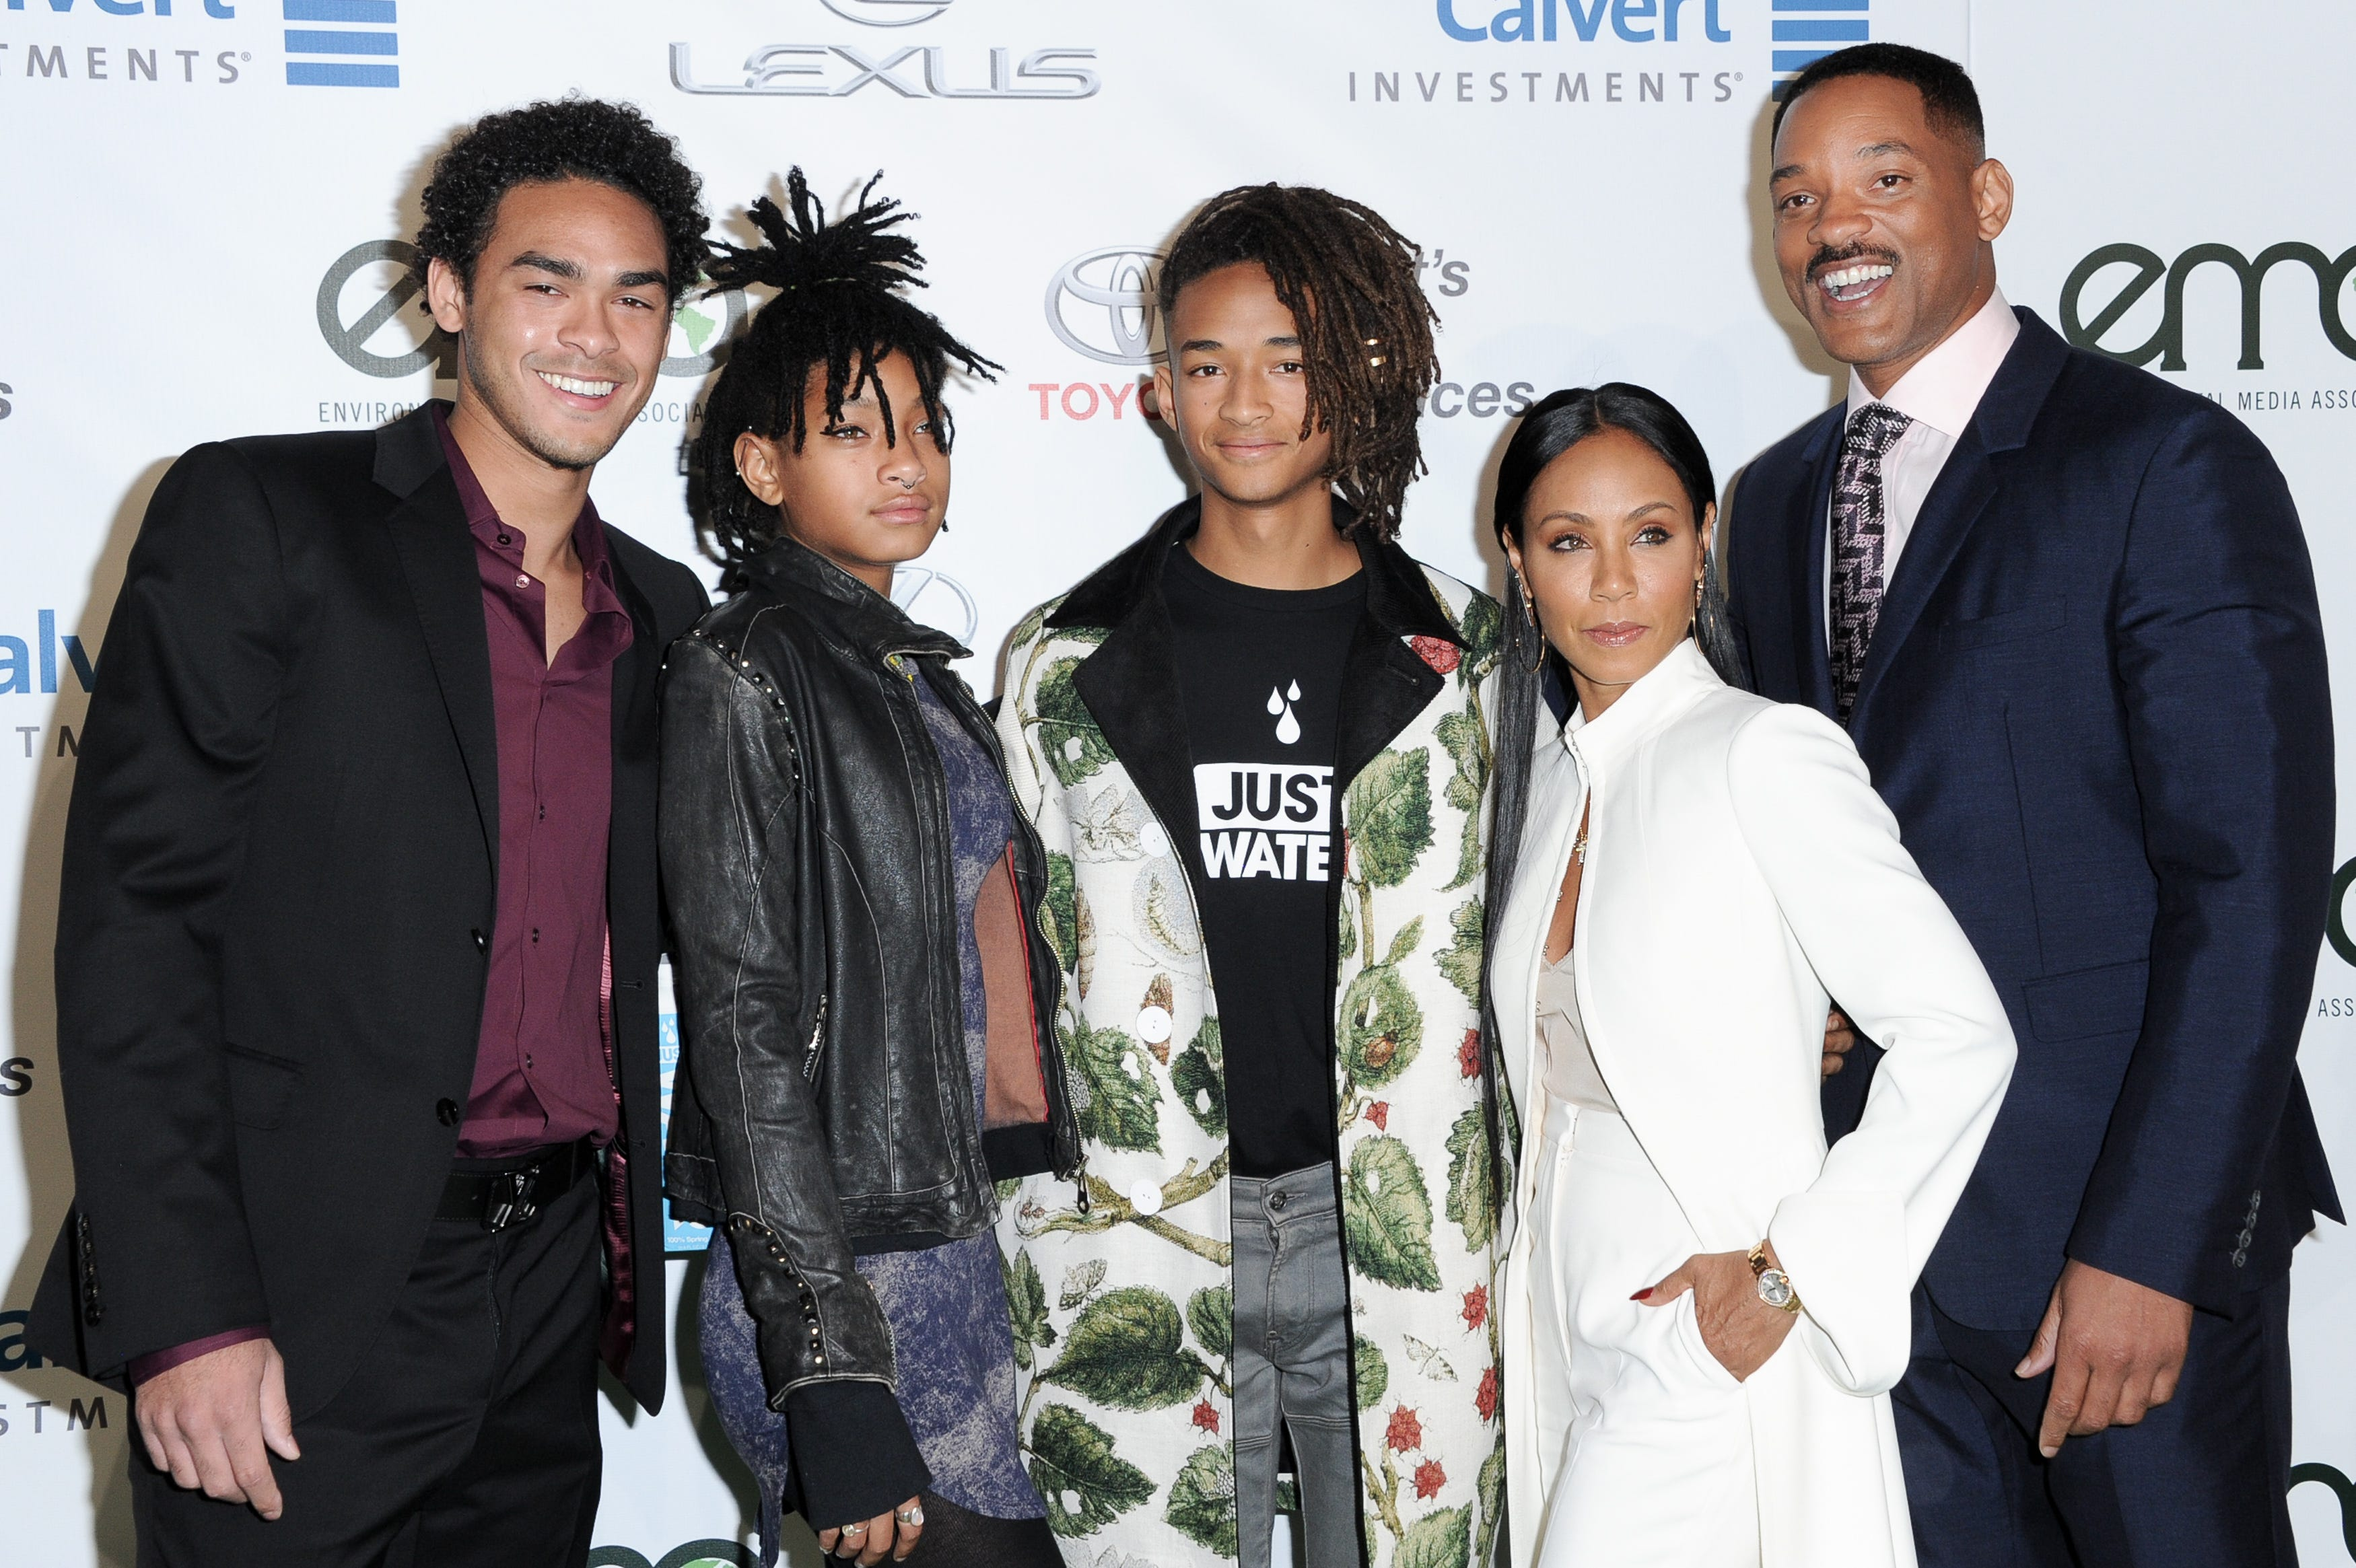 Trey Smith, Willow Smith, Jaden Smith, Jada Pinkett Smith and Will Smith attended the 26th Annual EMA Awards at Warner Bros. Studio on Saturday, Oct. 22, 2016, in Burbank, Calif.